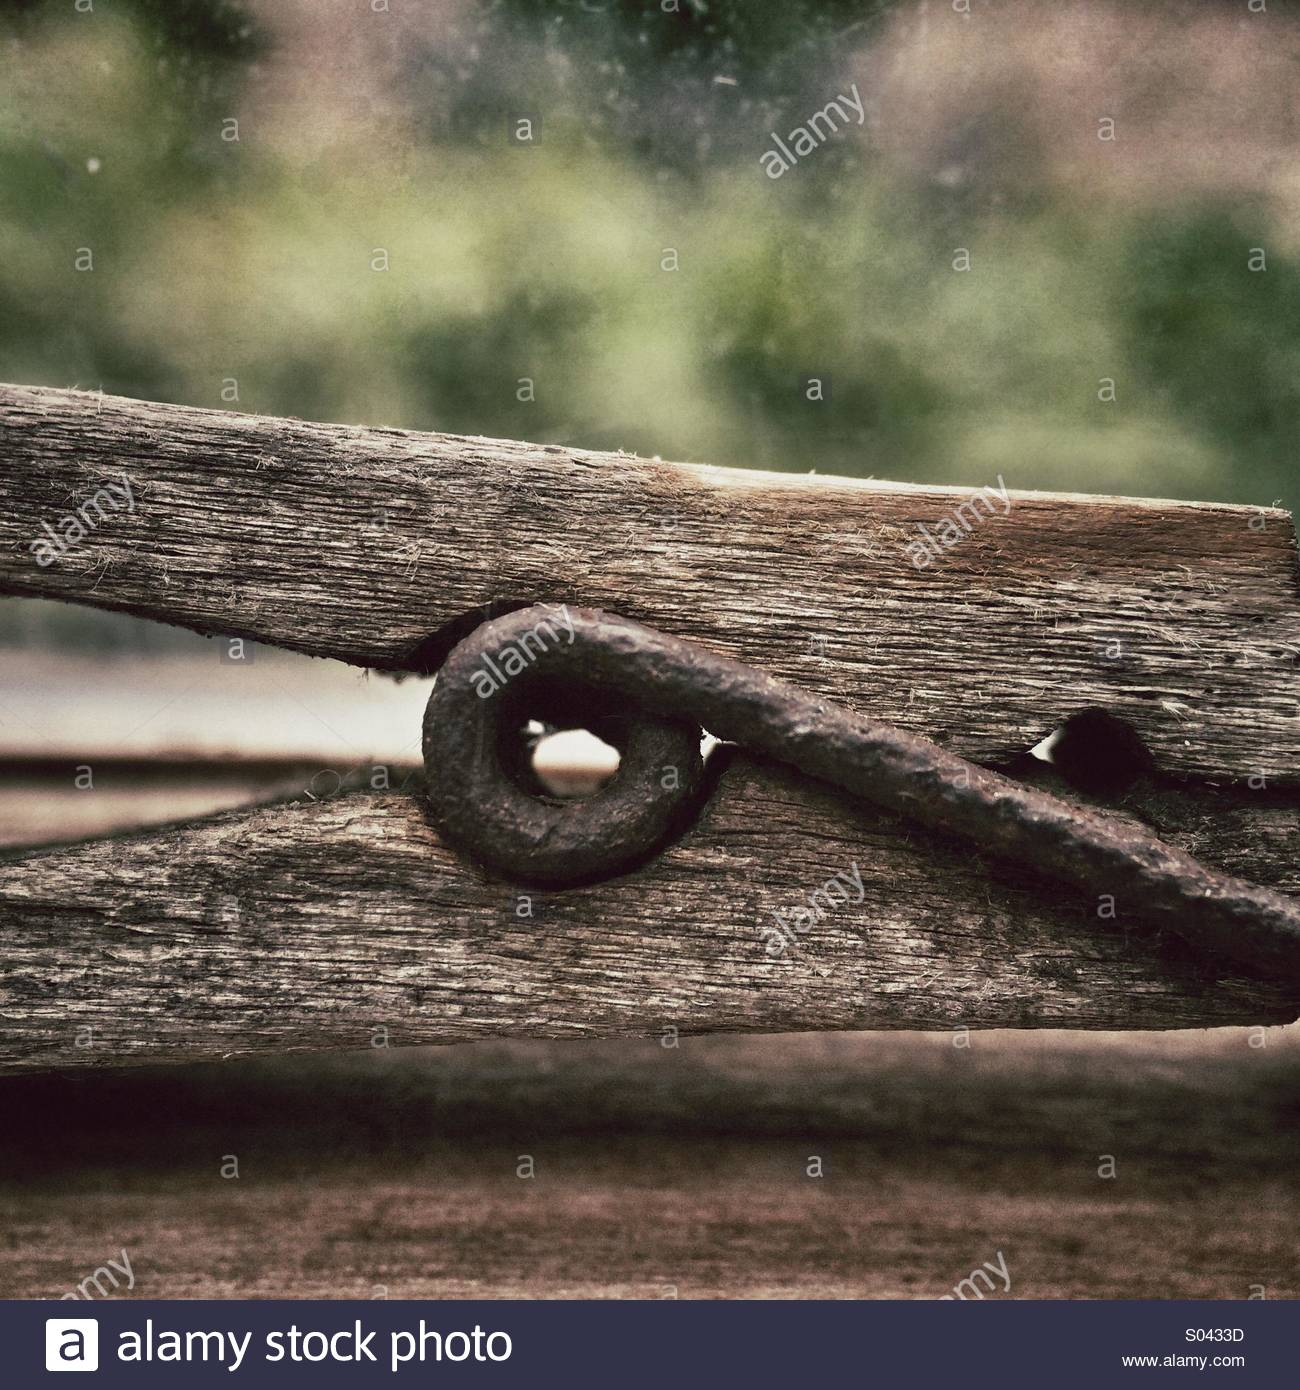 Wooden Clothes Peg Close Up - Stock Image